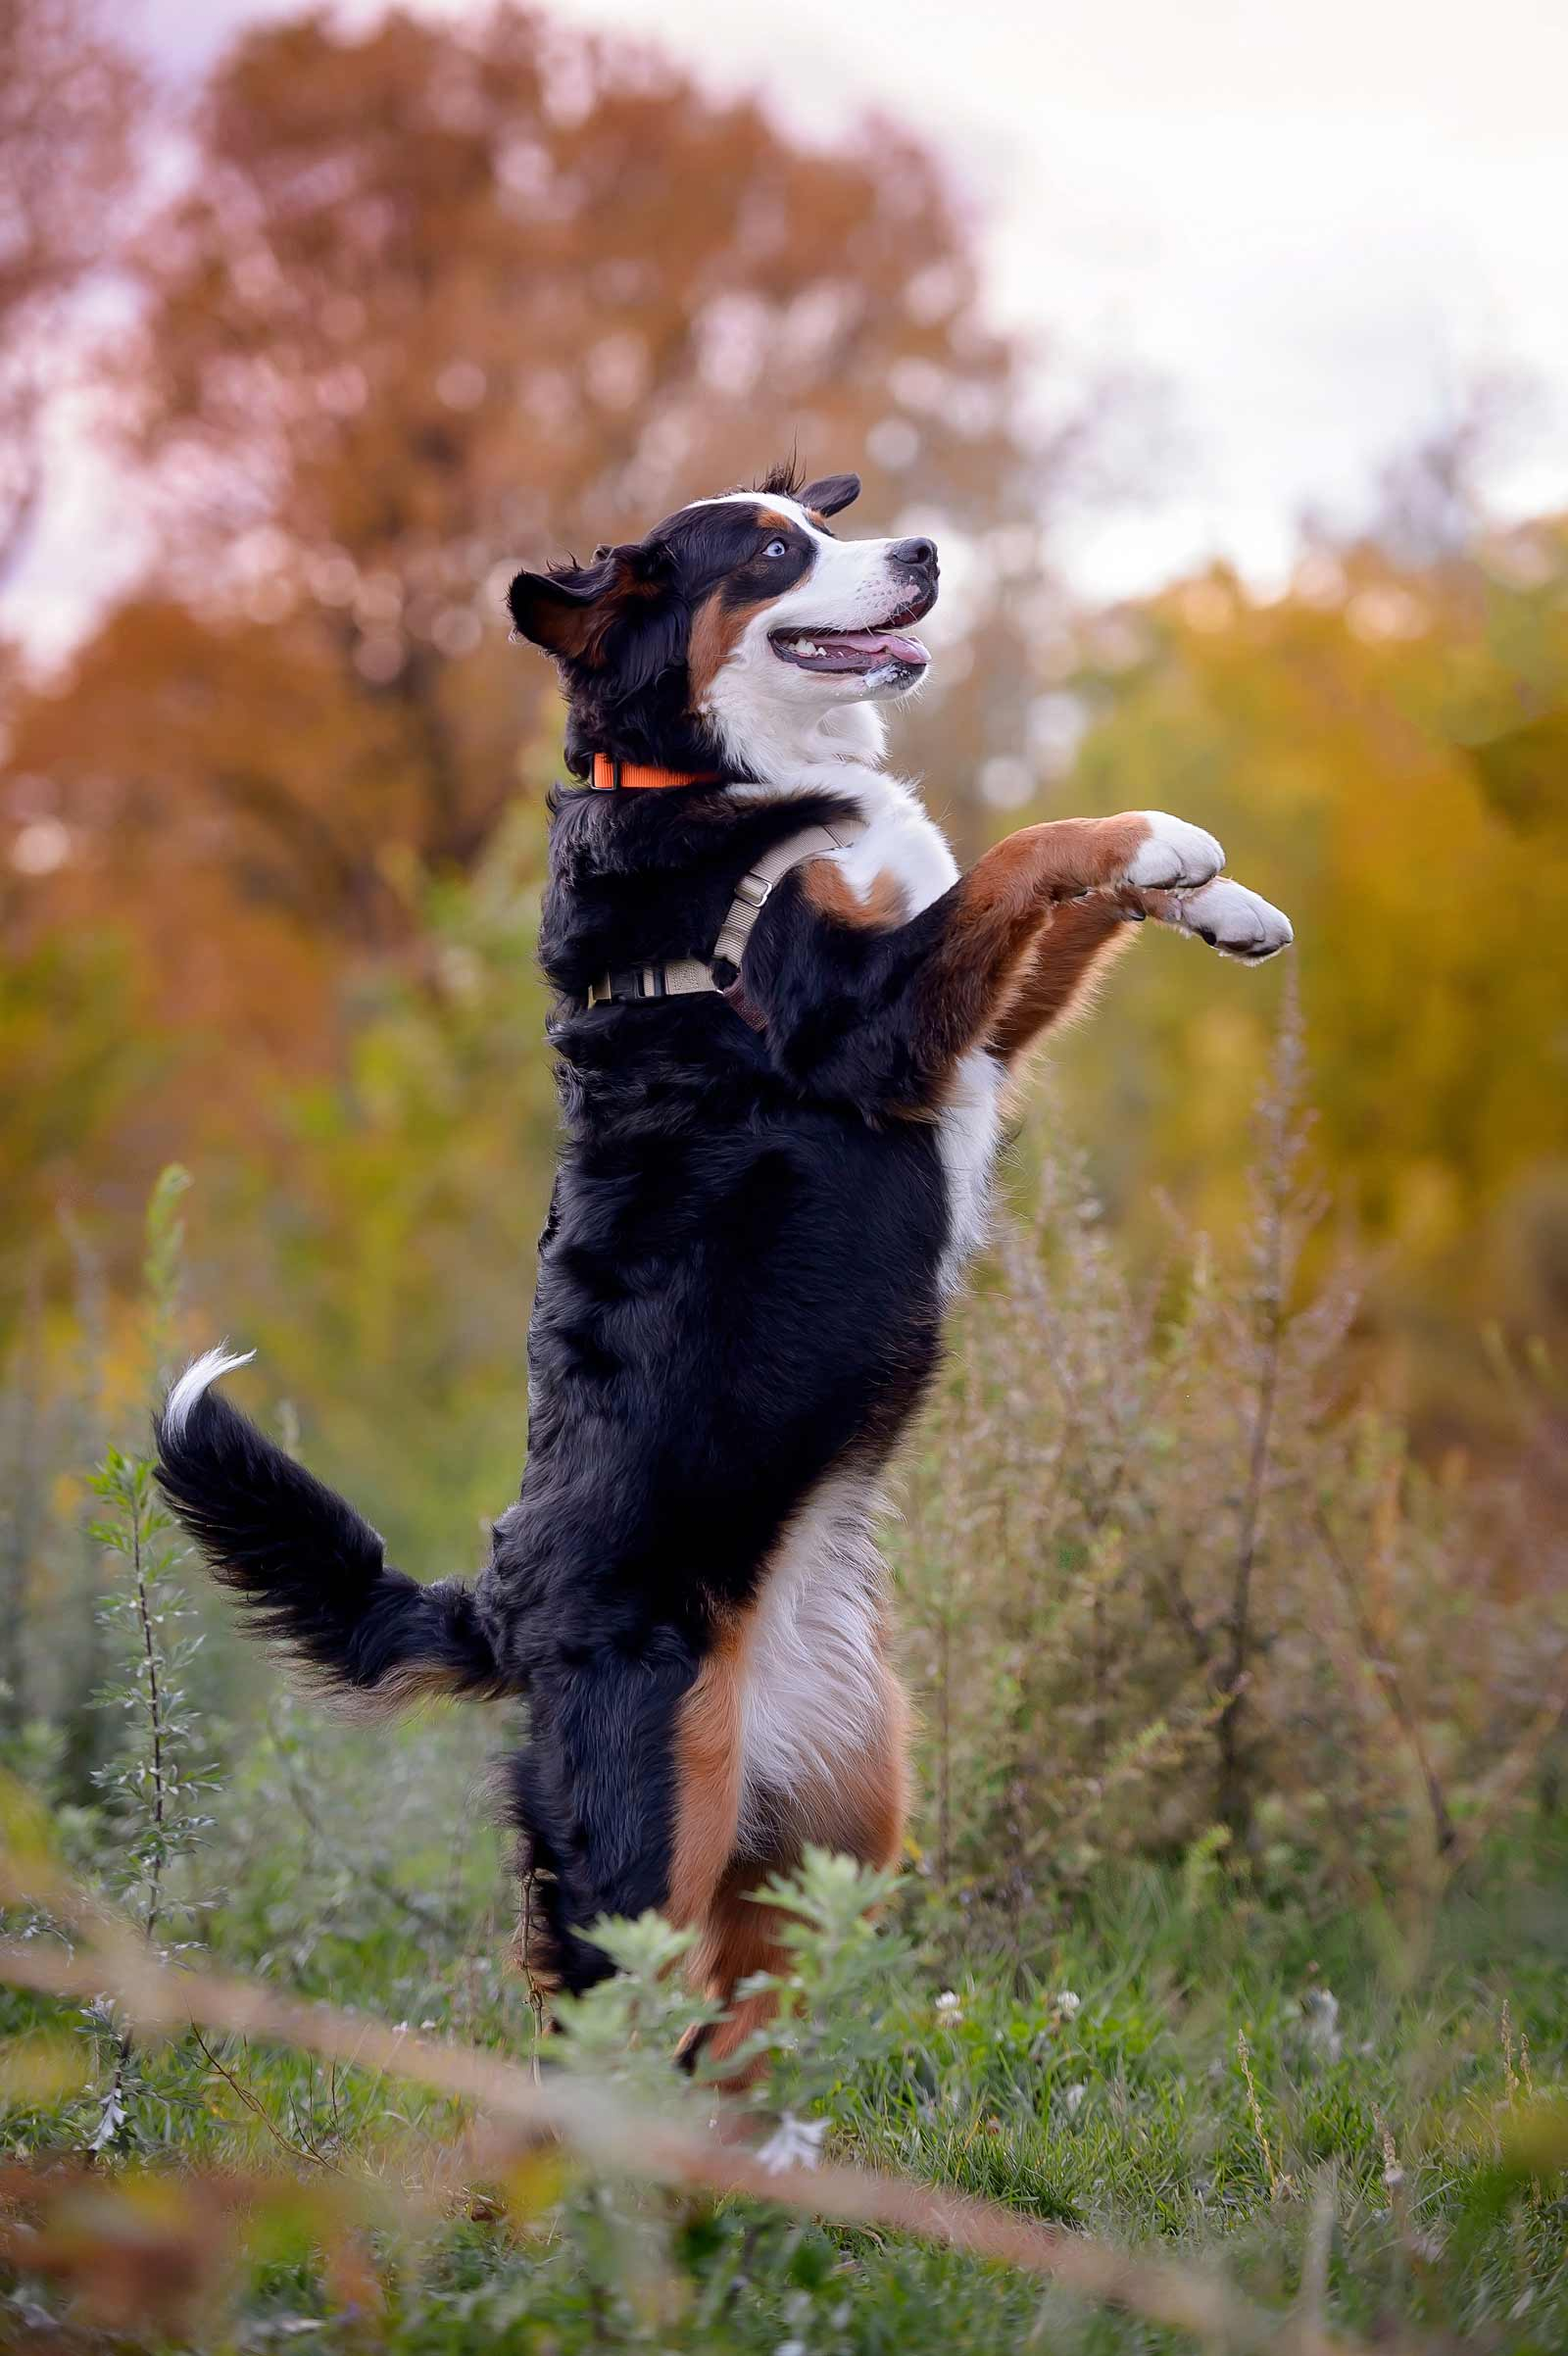 Ottawa Dog Photographer Princess Leia the Bernese mountain dog at Lemieux Island in the fall standing on steps with ferns